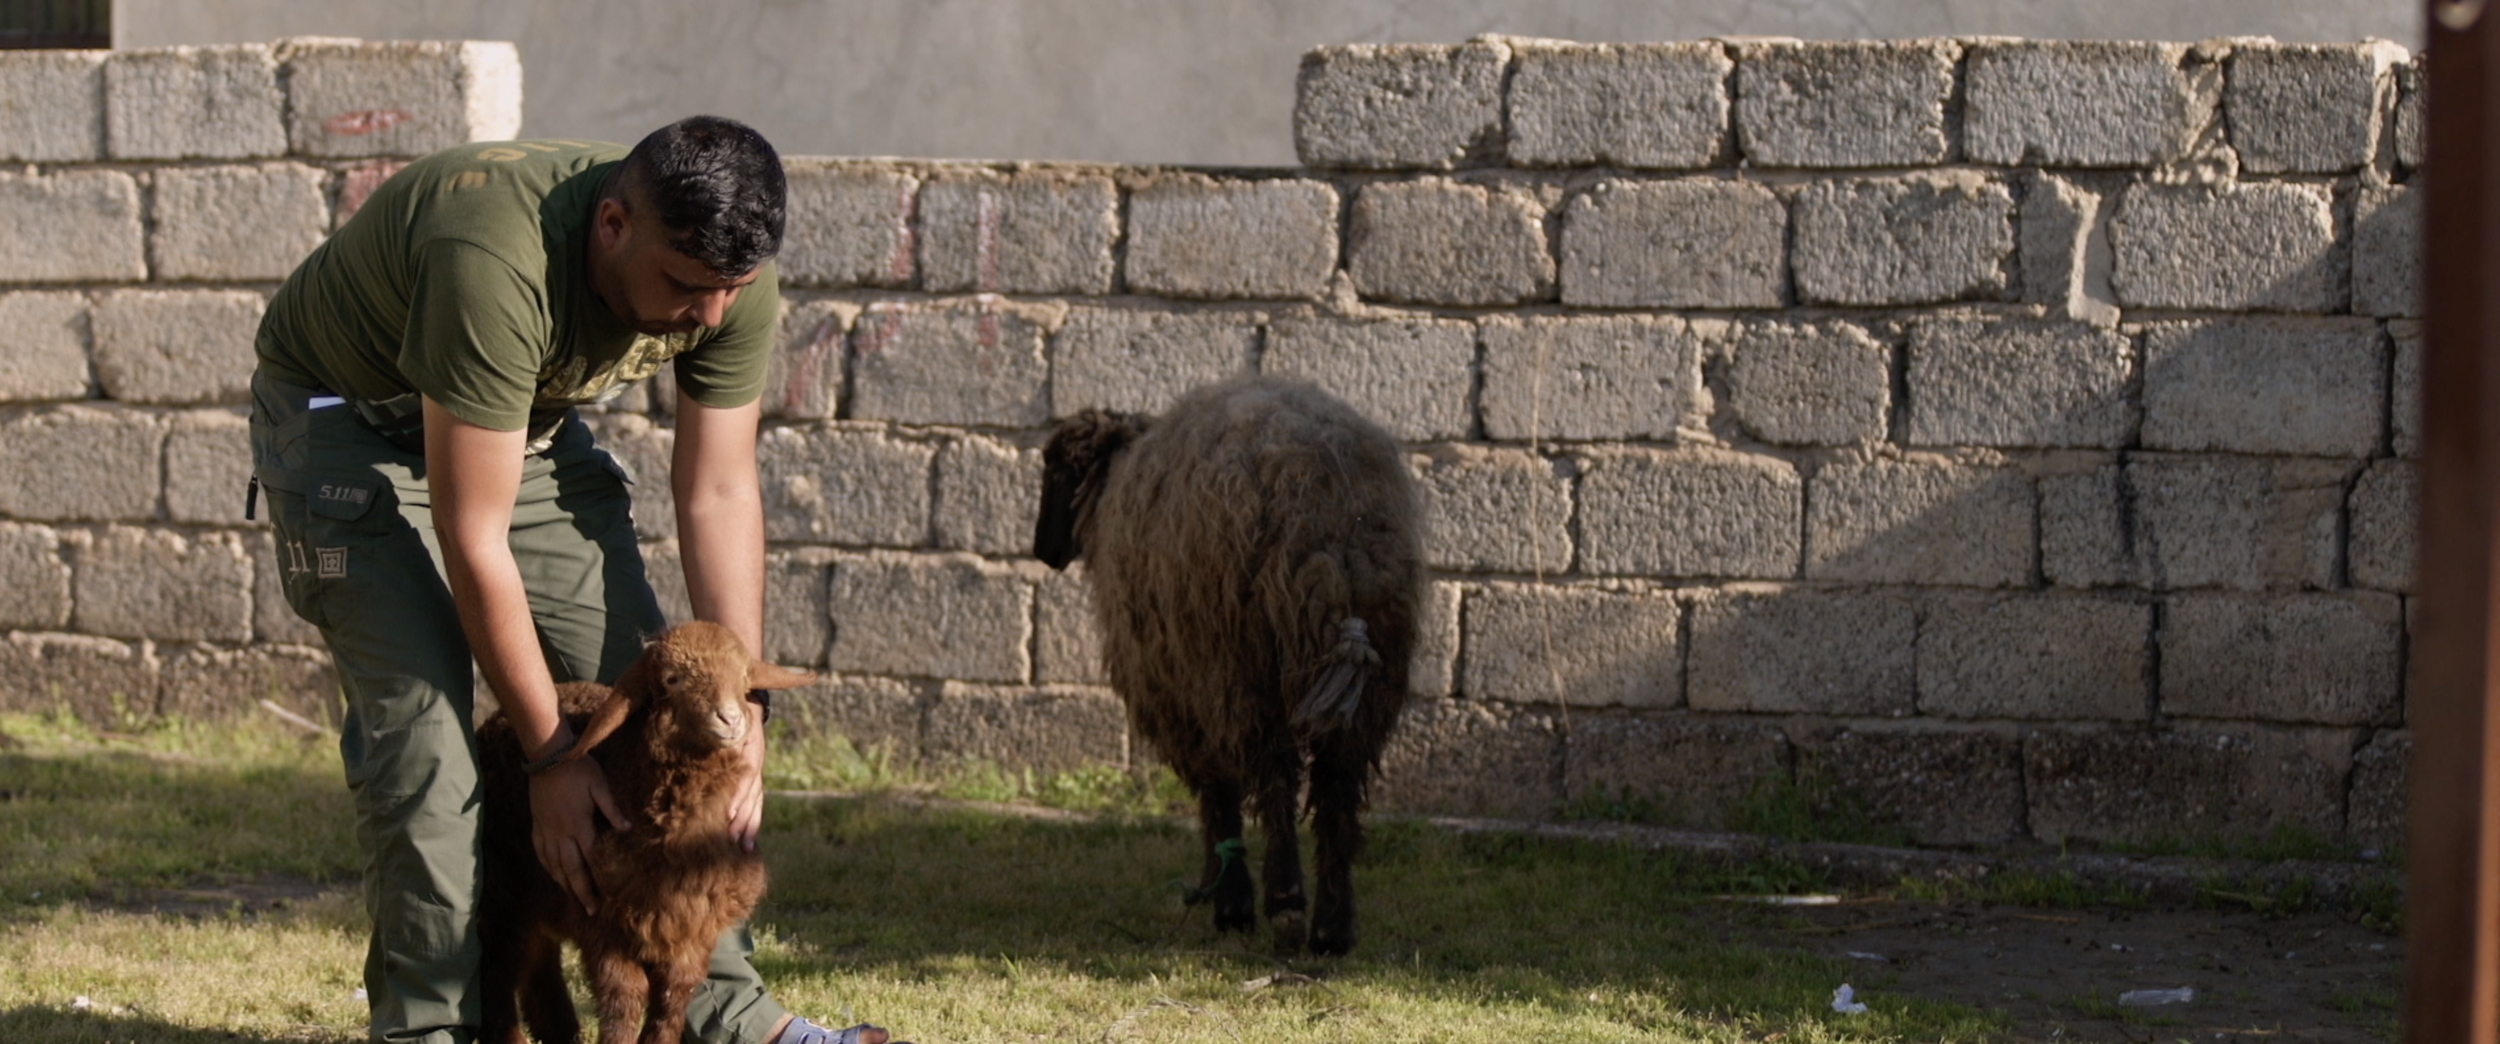 Soldier Khadoury tending to his sheep.png